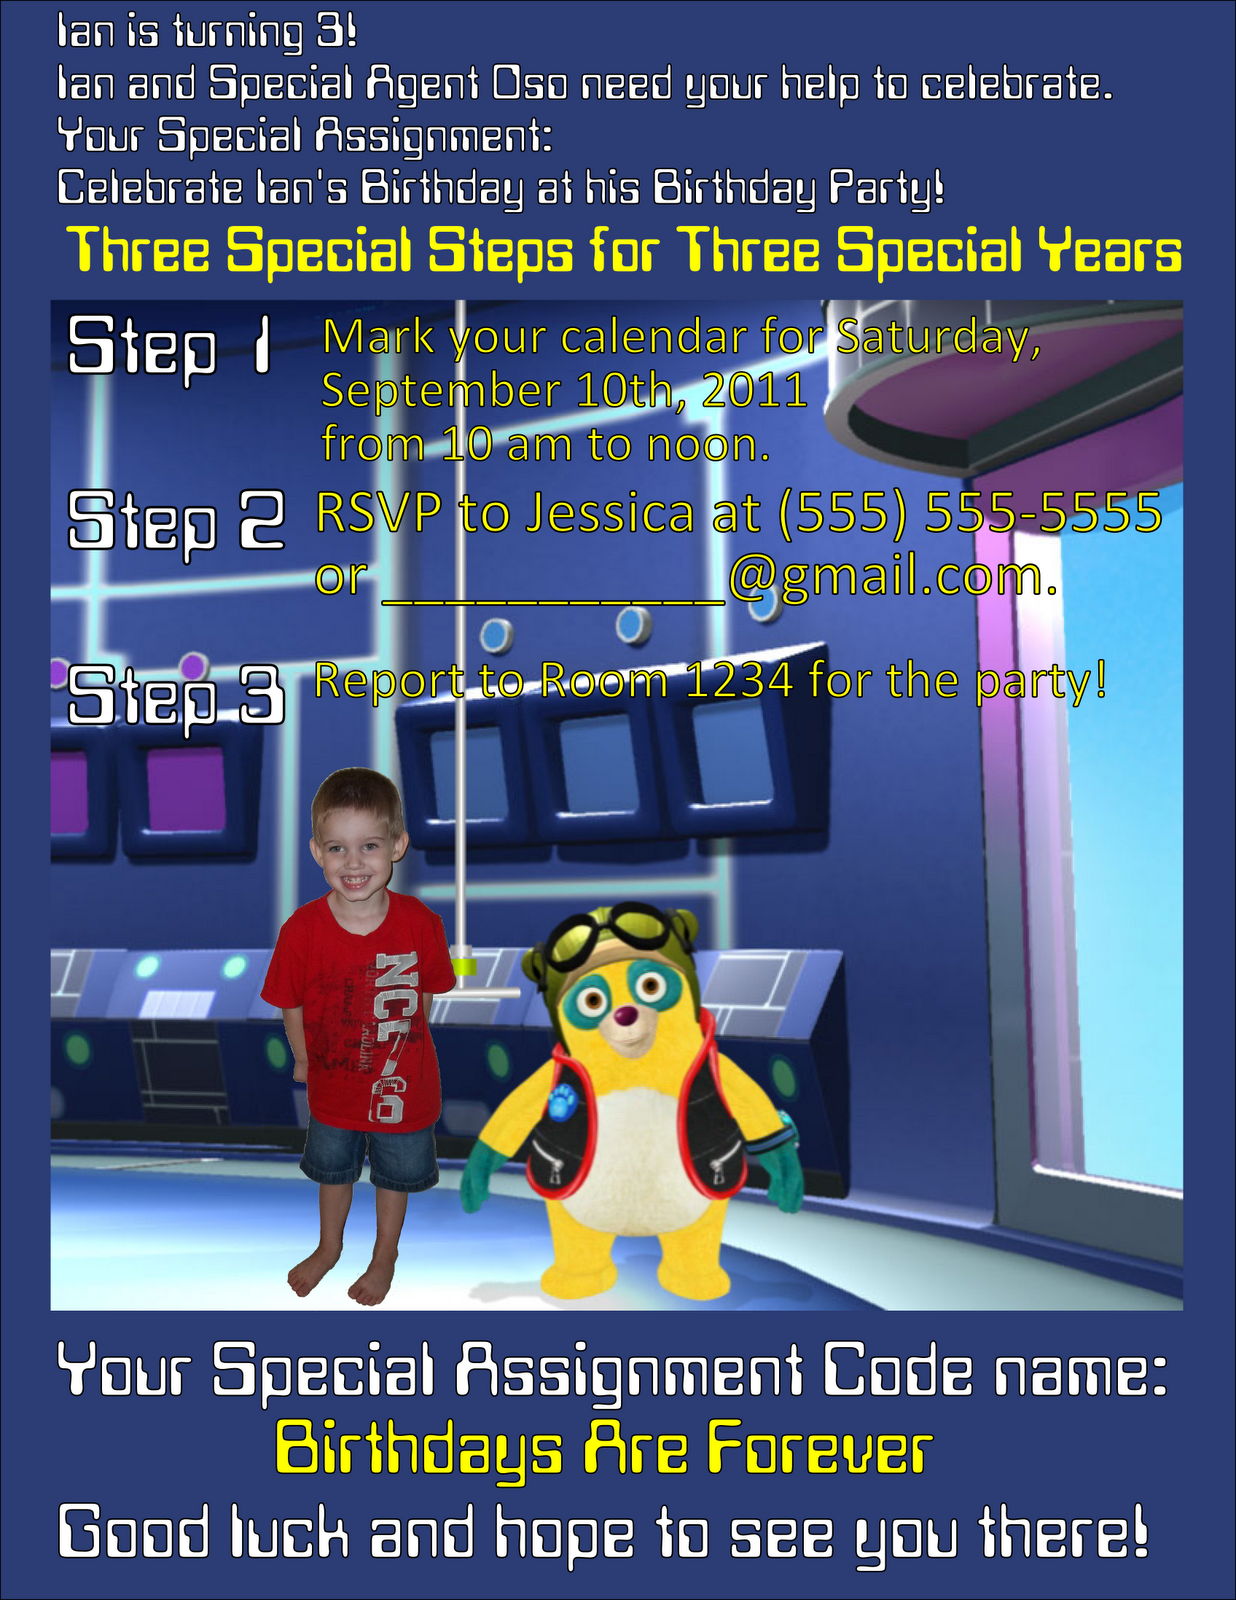 Speical Agent Oso Birthday Party